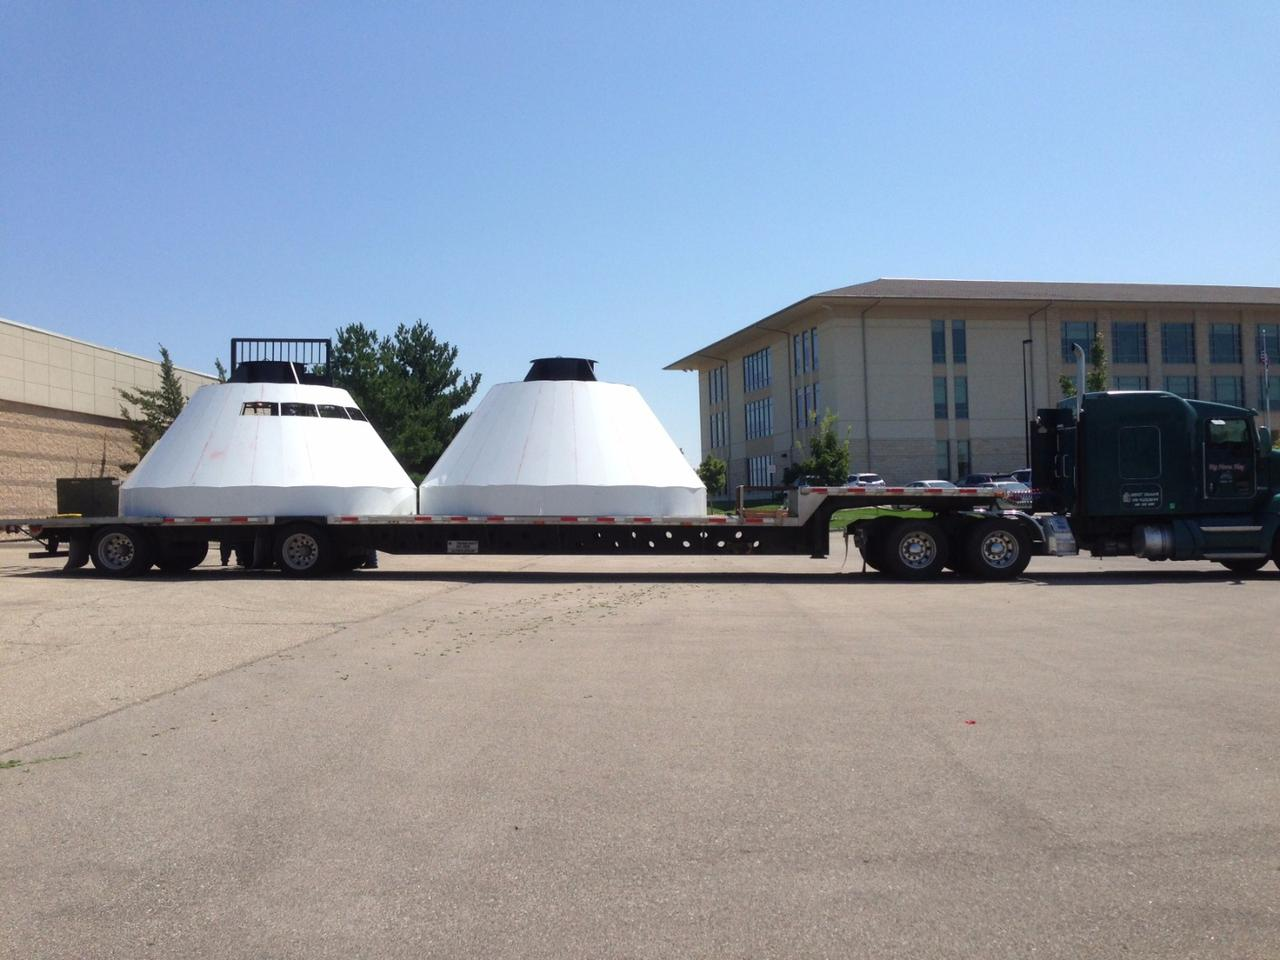 The two halves of a mock Orion spacecraft arrive at Kansas State University